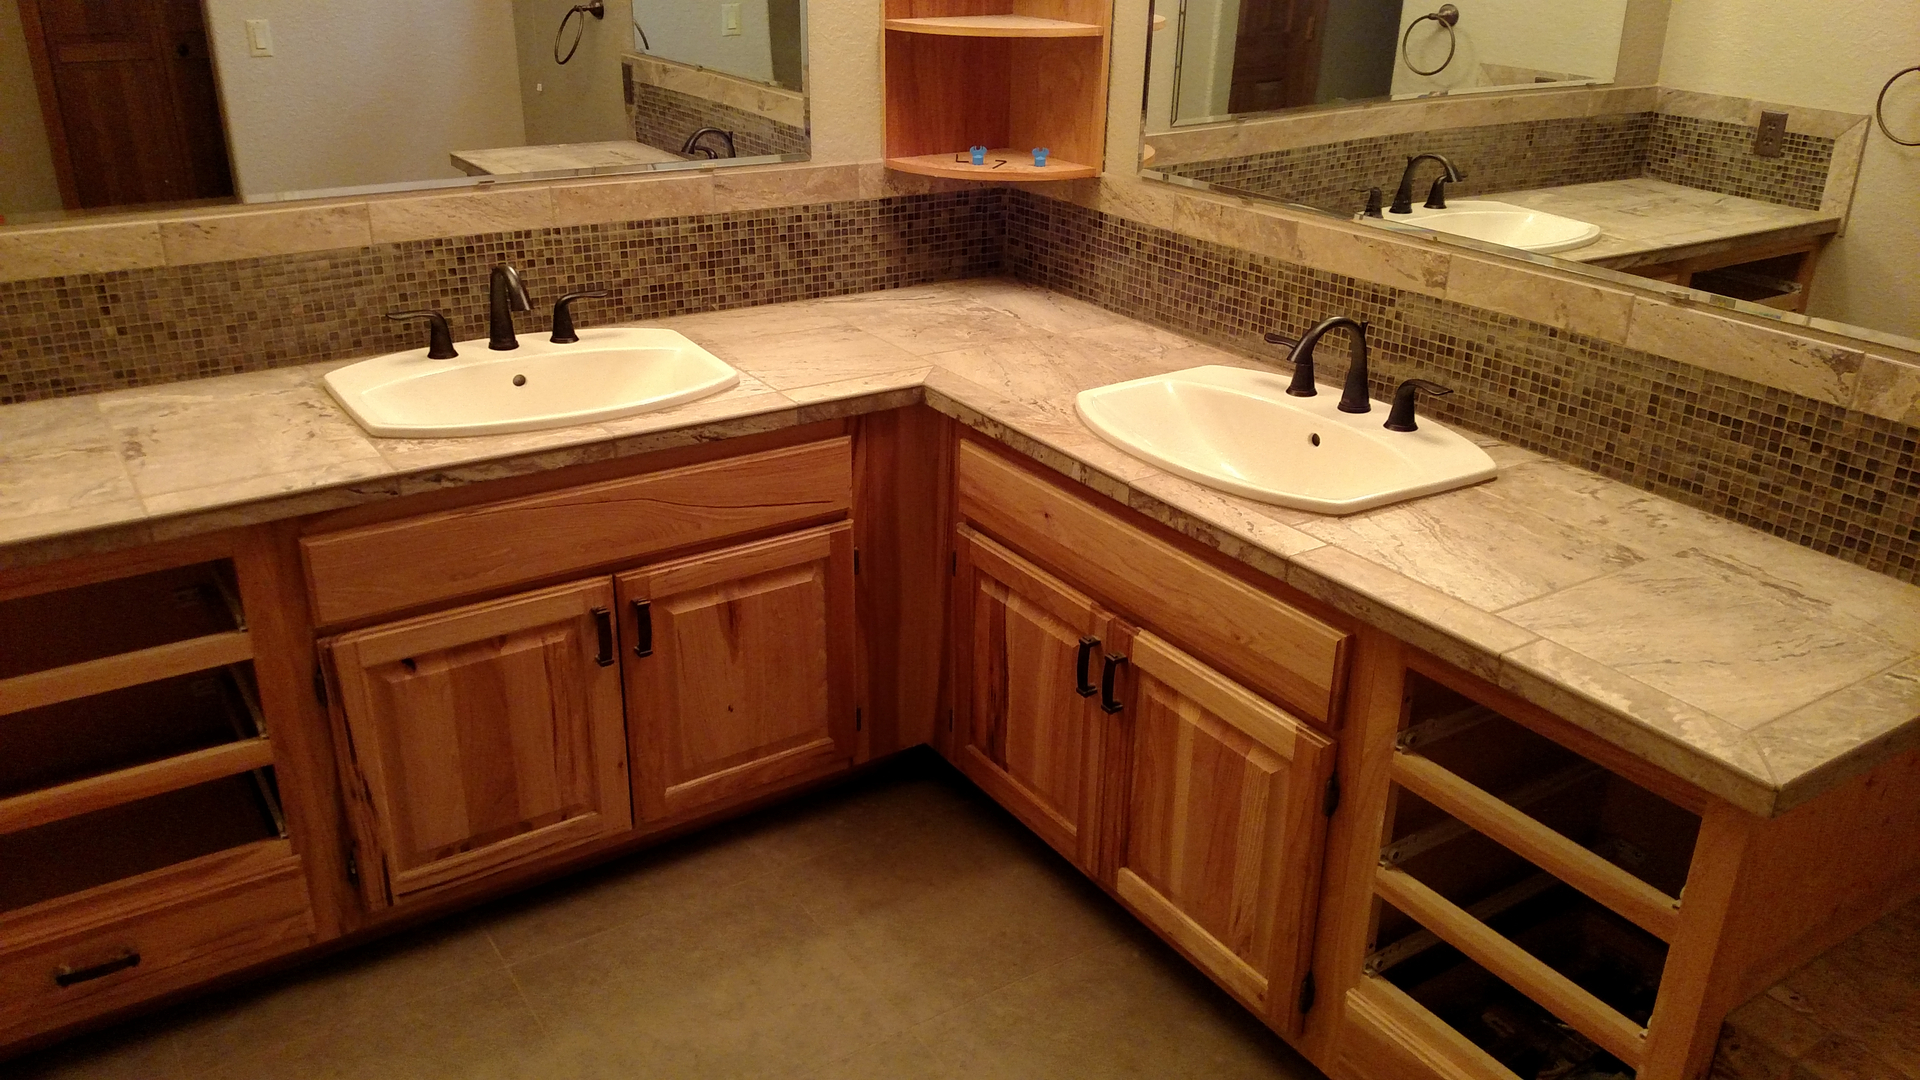 bathroom park washington strategies biederman featured contractors for remodel real smart remodeling